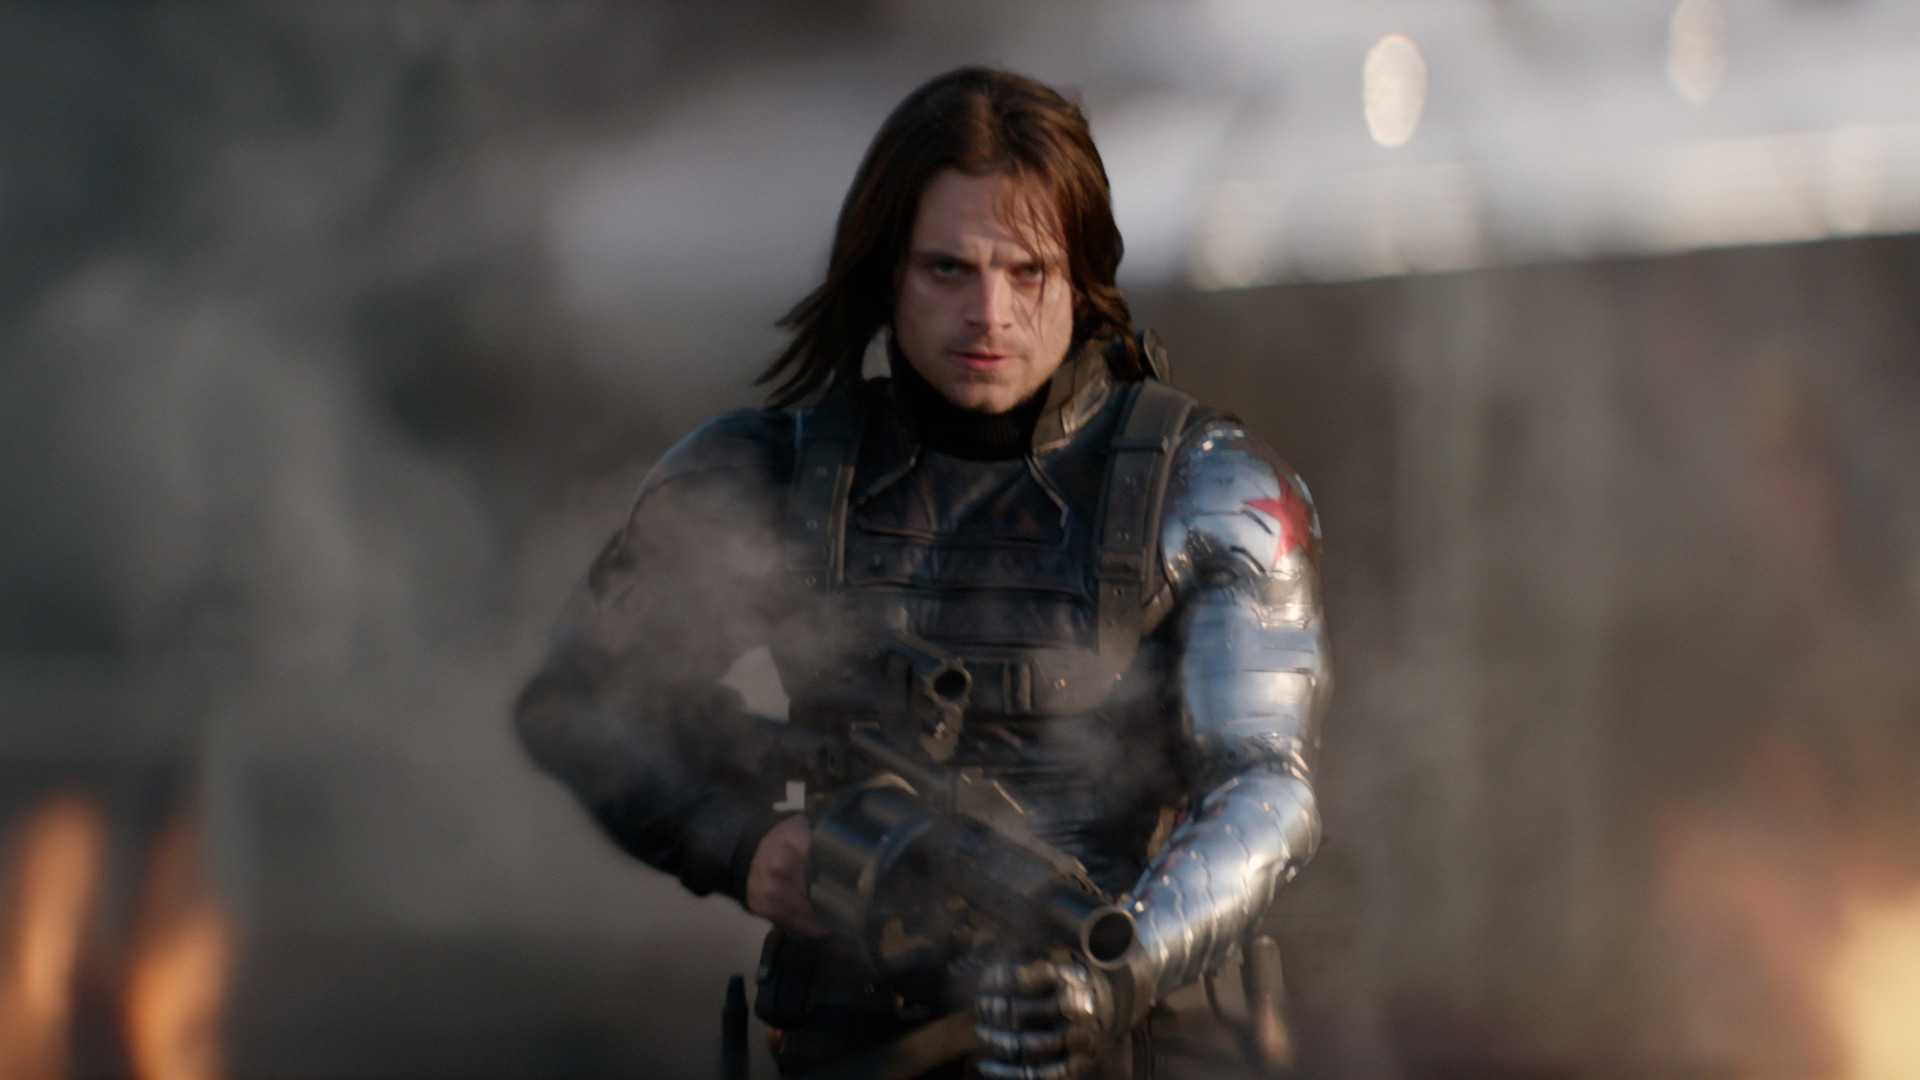 1920x1080 Captain America Winter Soldier Wallpaper Picture Mytwiink Captain America  The Winter Soldier Bucky wallpaper wallpaper